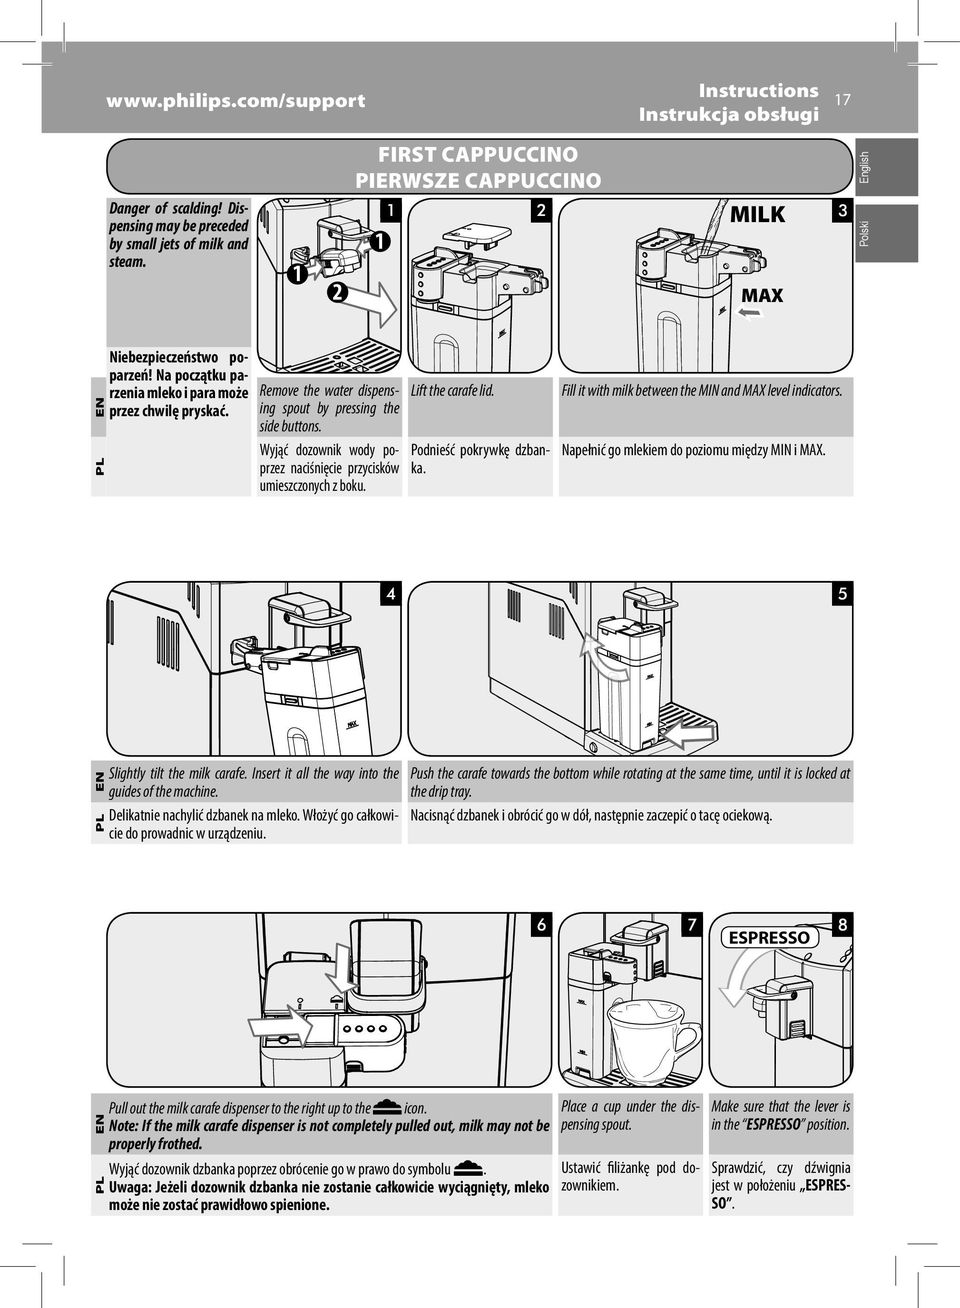 How to clean the steamhot water spout after use on your De